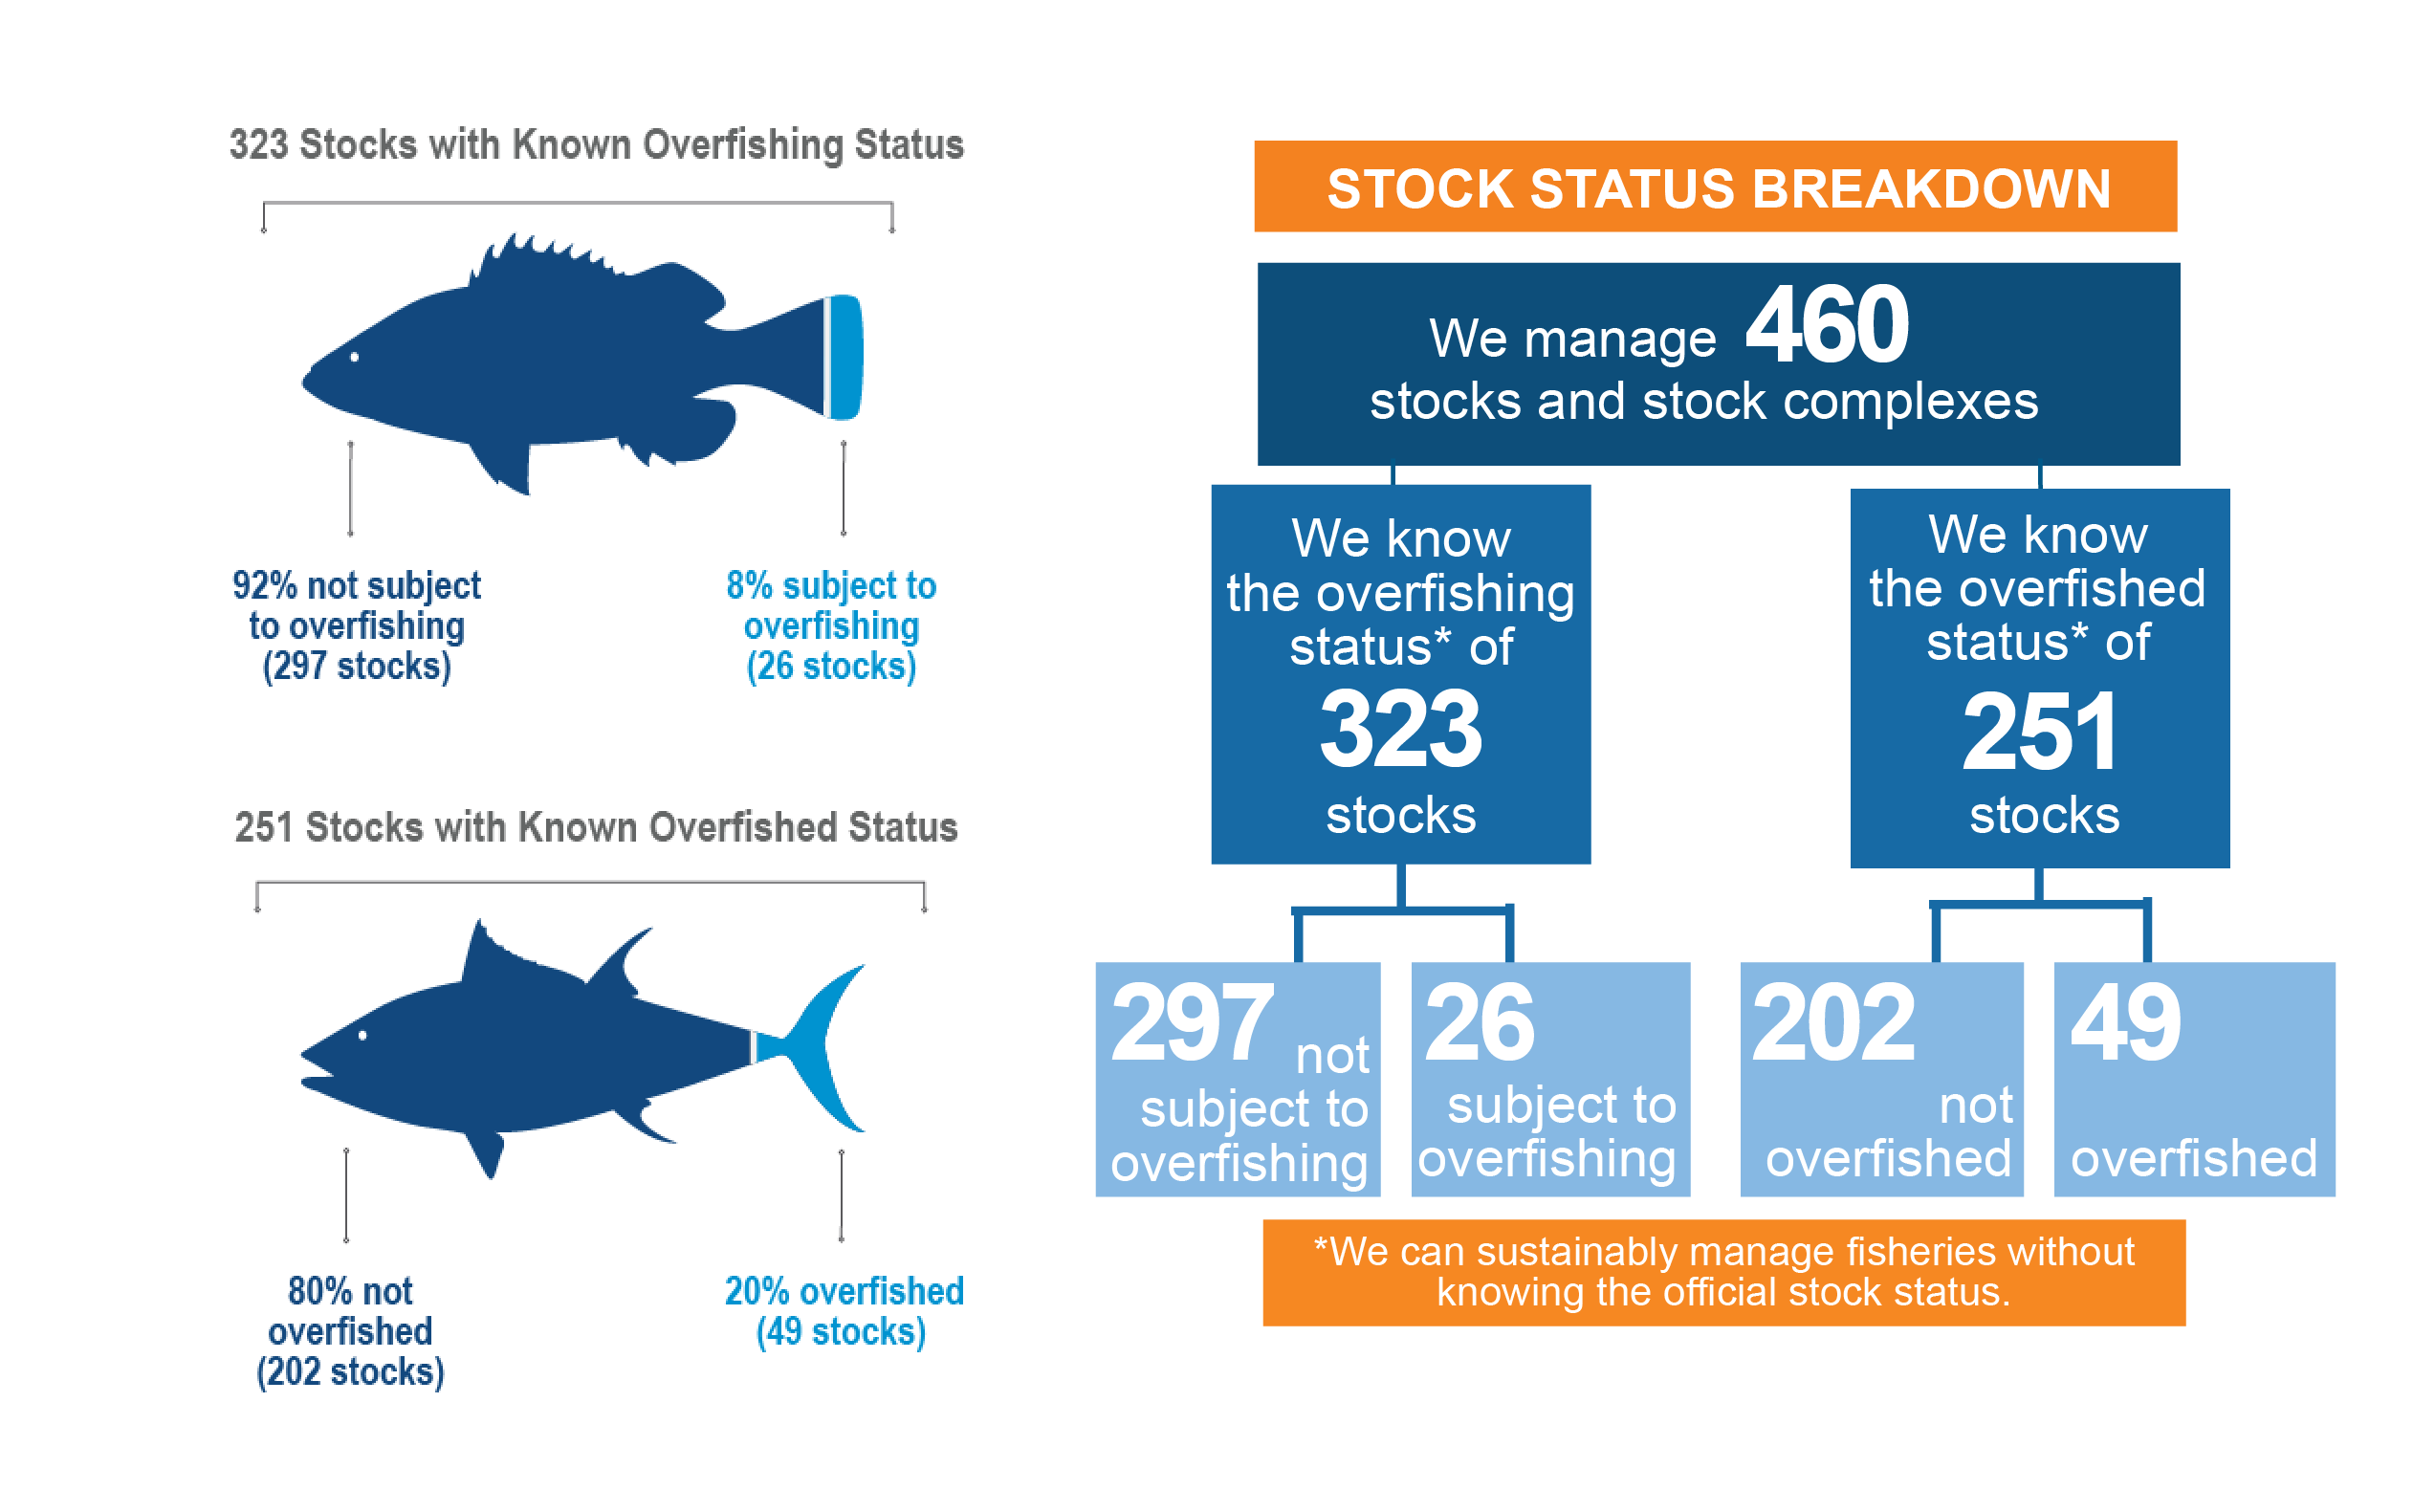 Graphic illustrating break down of stock status in the United States.